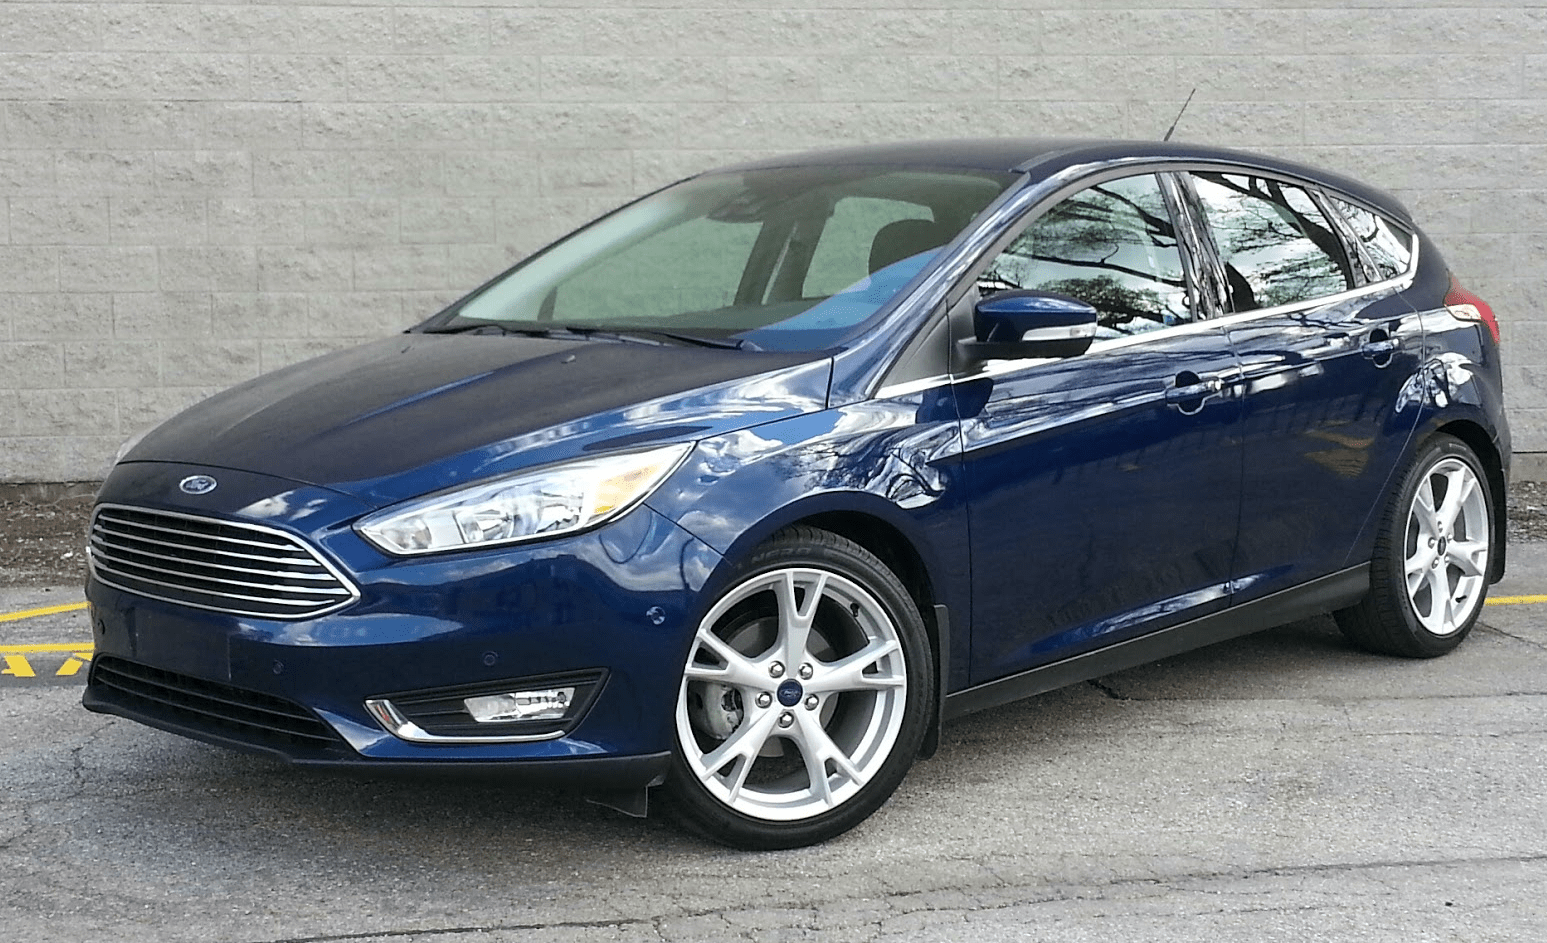 Test Drive 2016 Ford Focus Titanium  The Daily Drive  Consumer Guide The Daily Drive